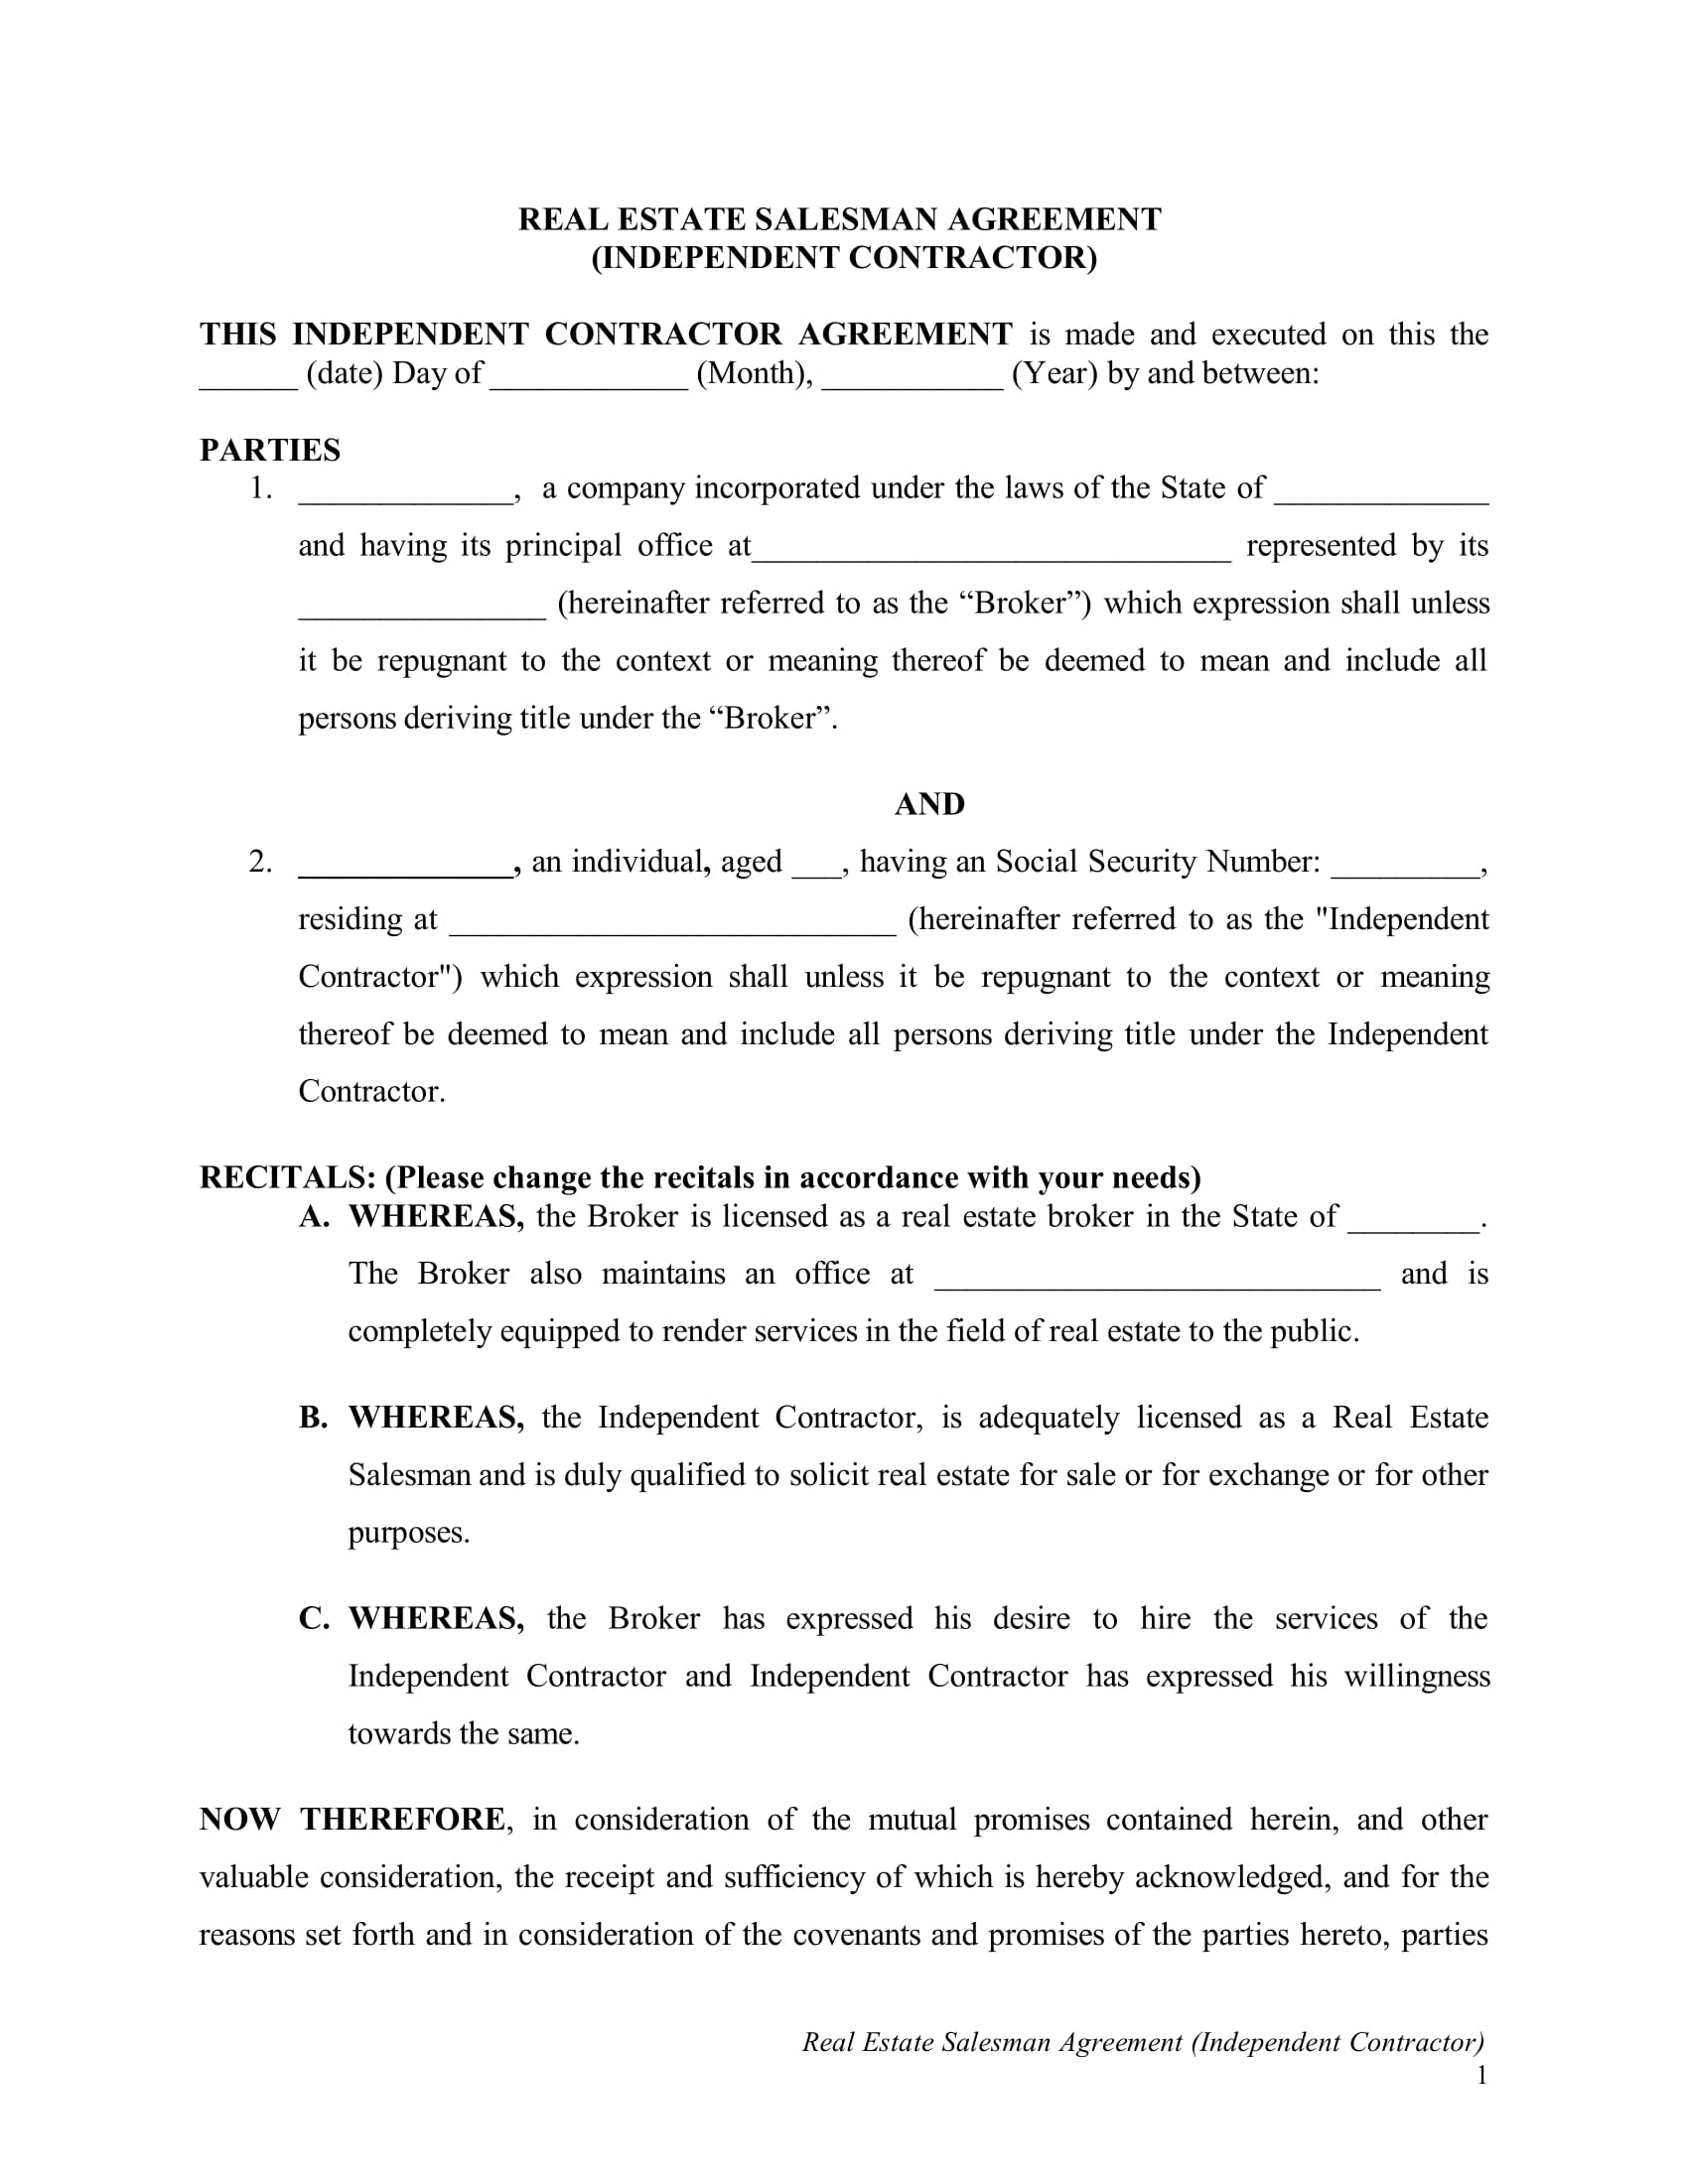 real estate salesman agreement contract form 05